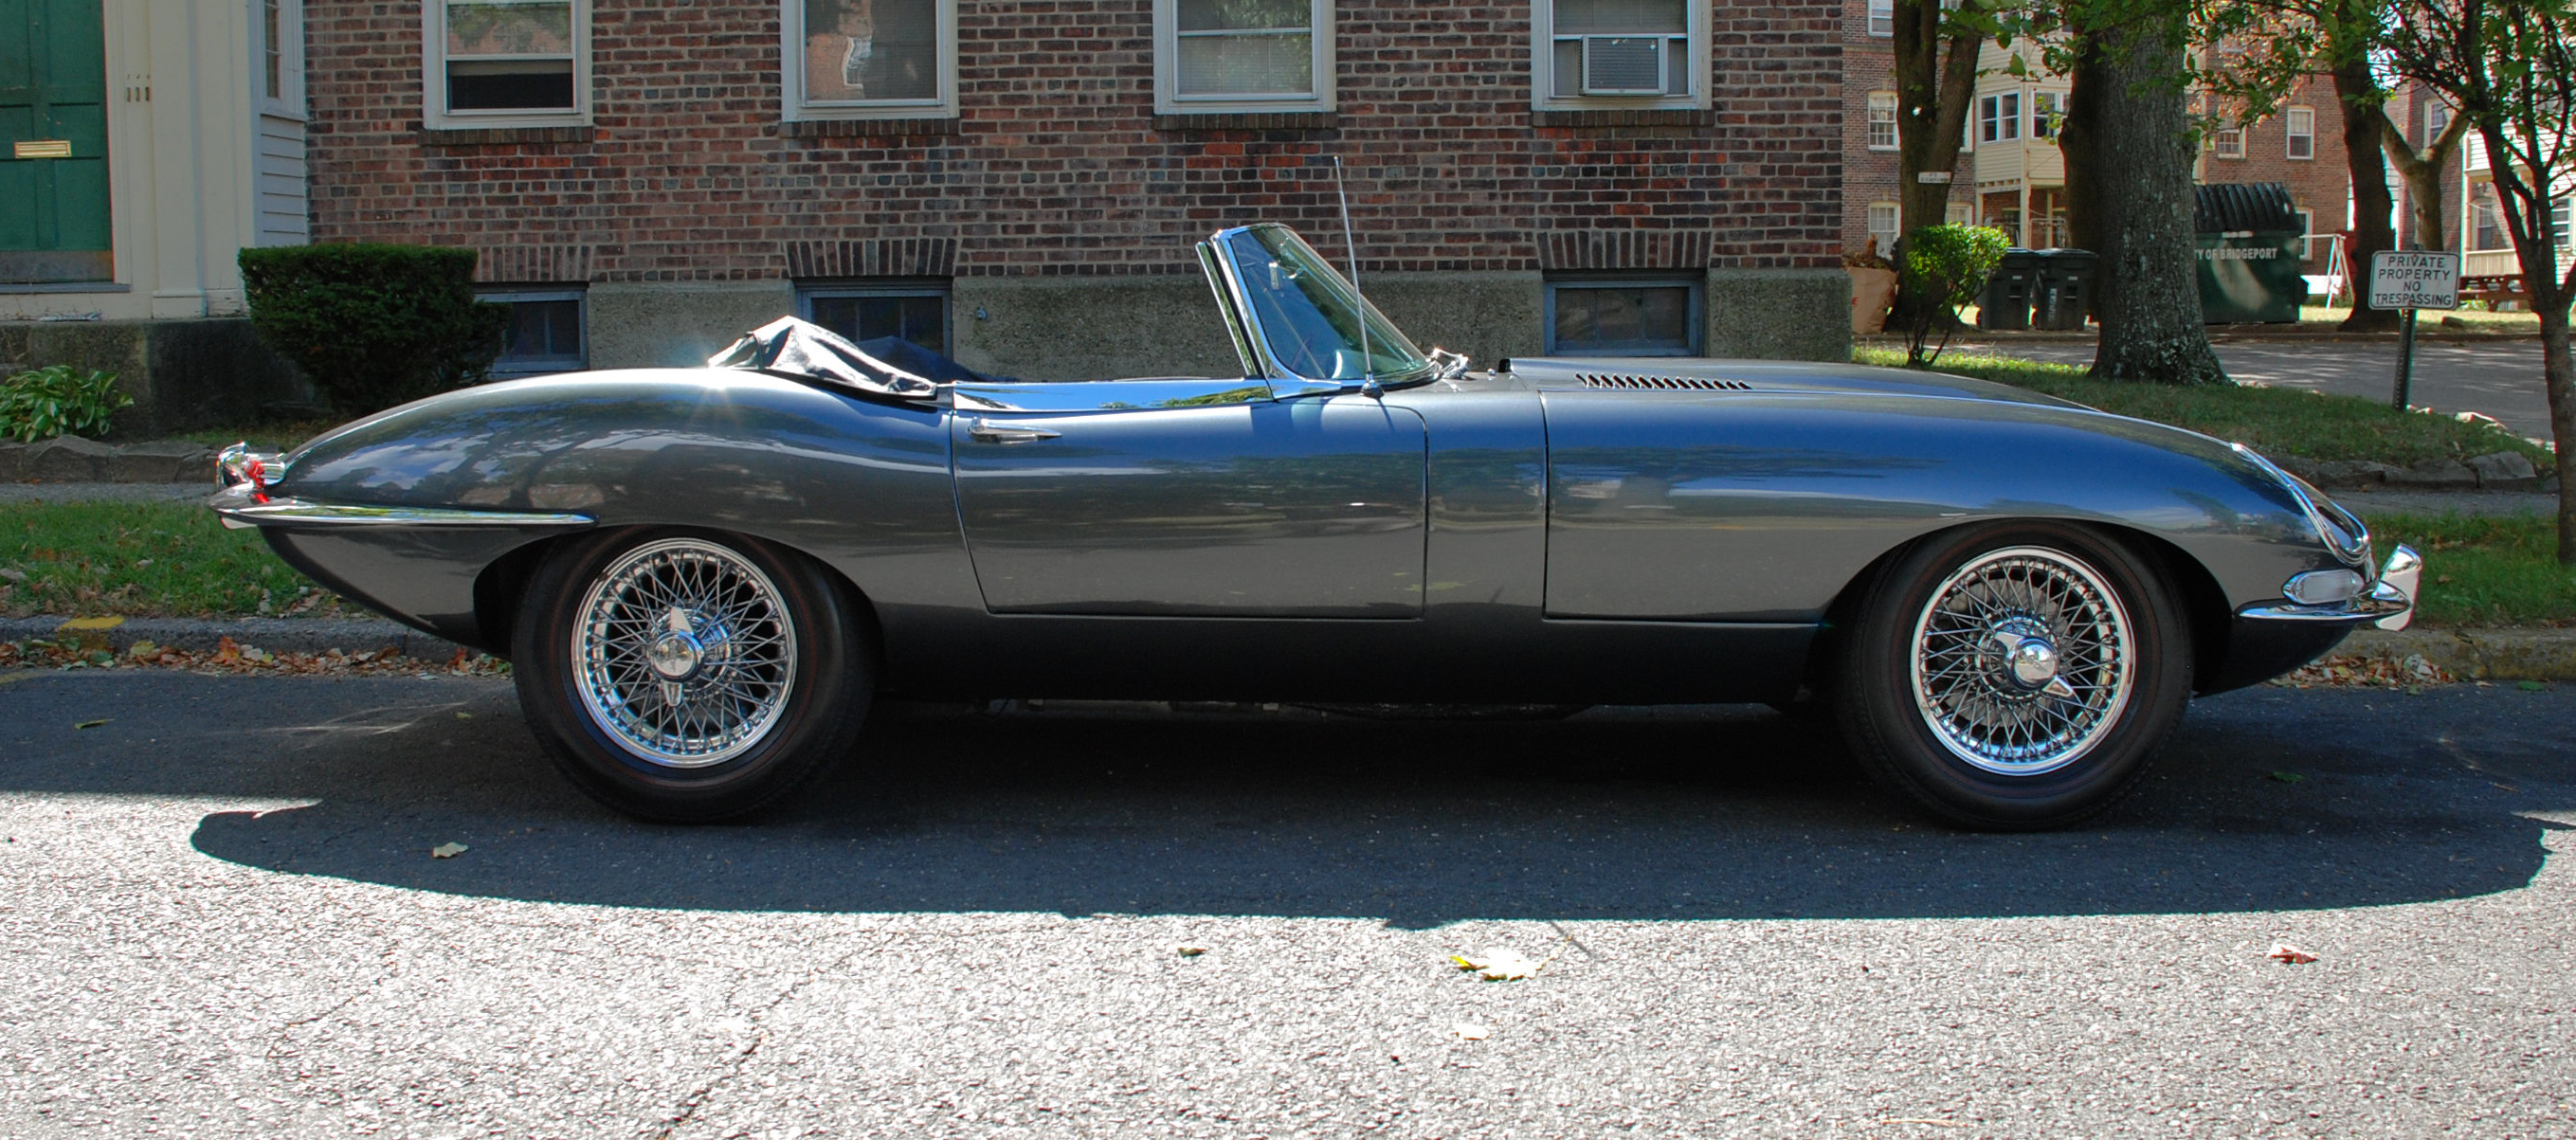 1966 Jaguar E-Type #16